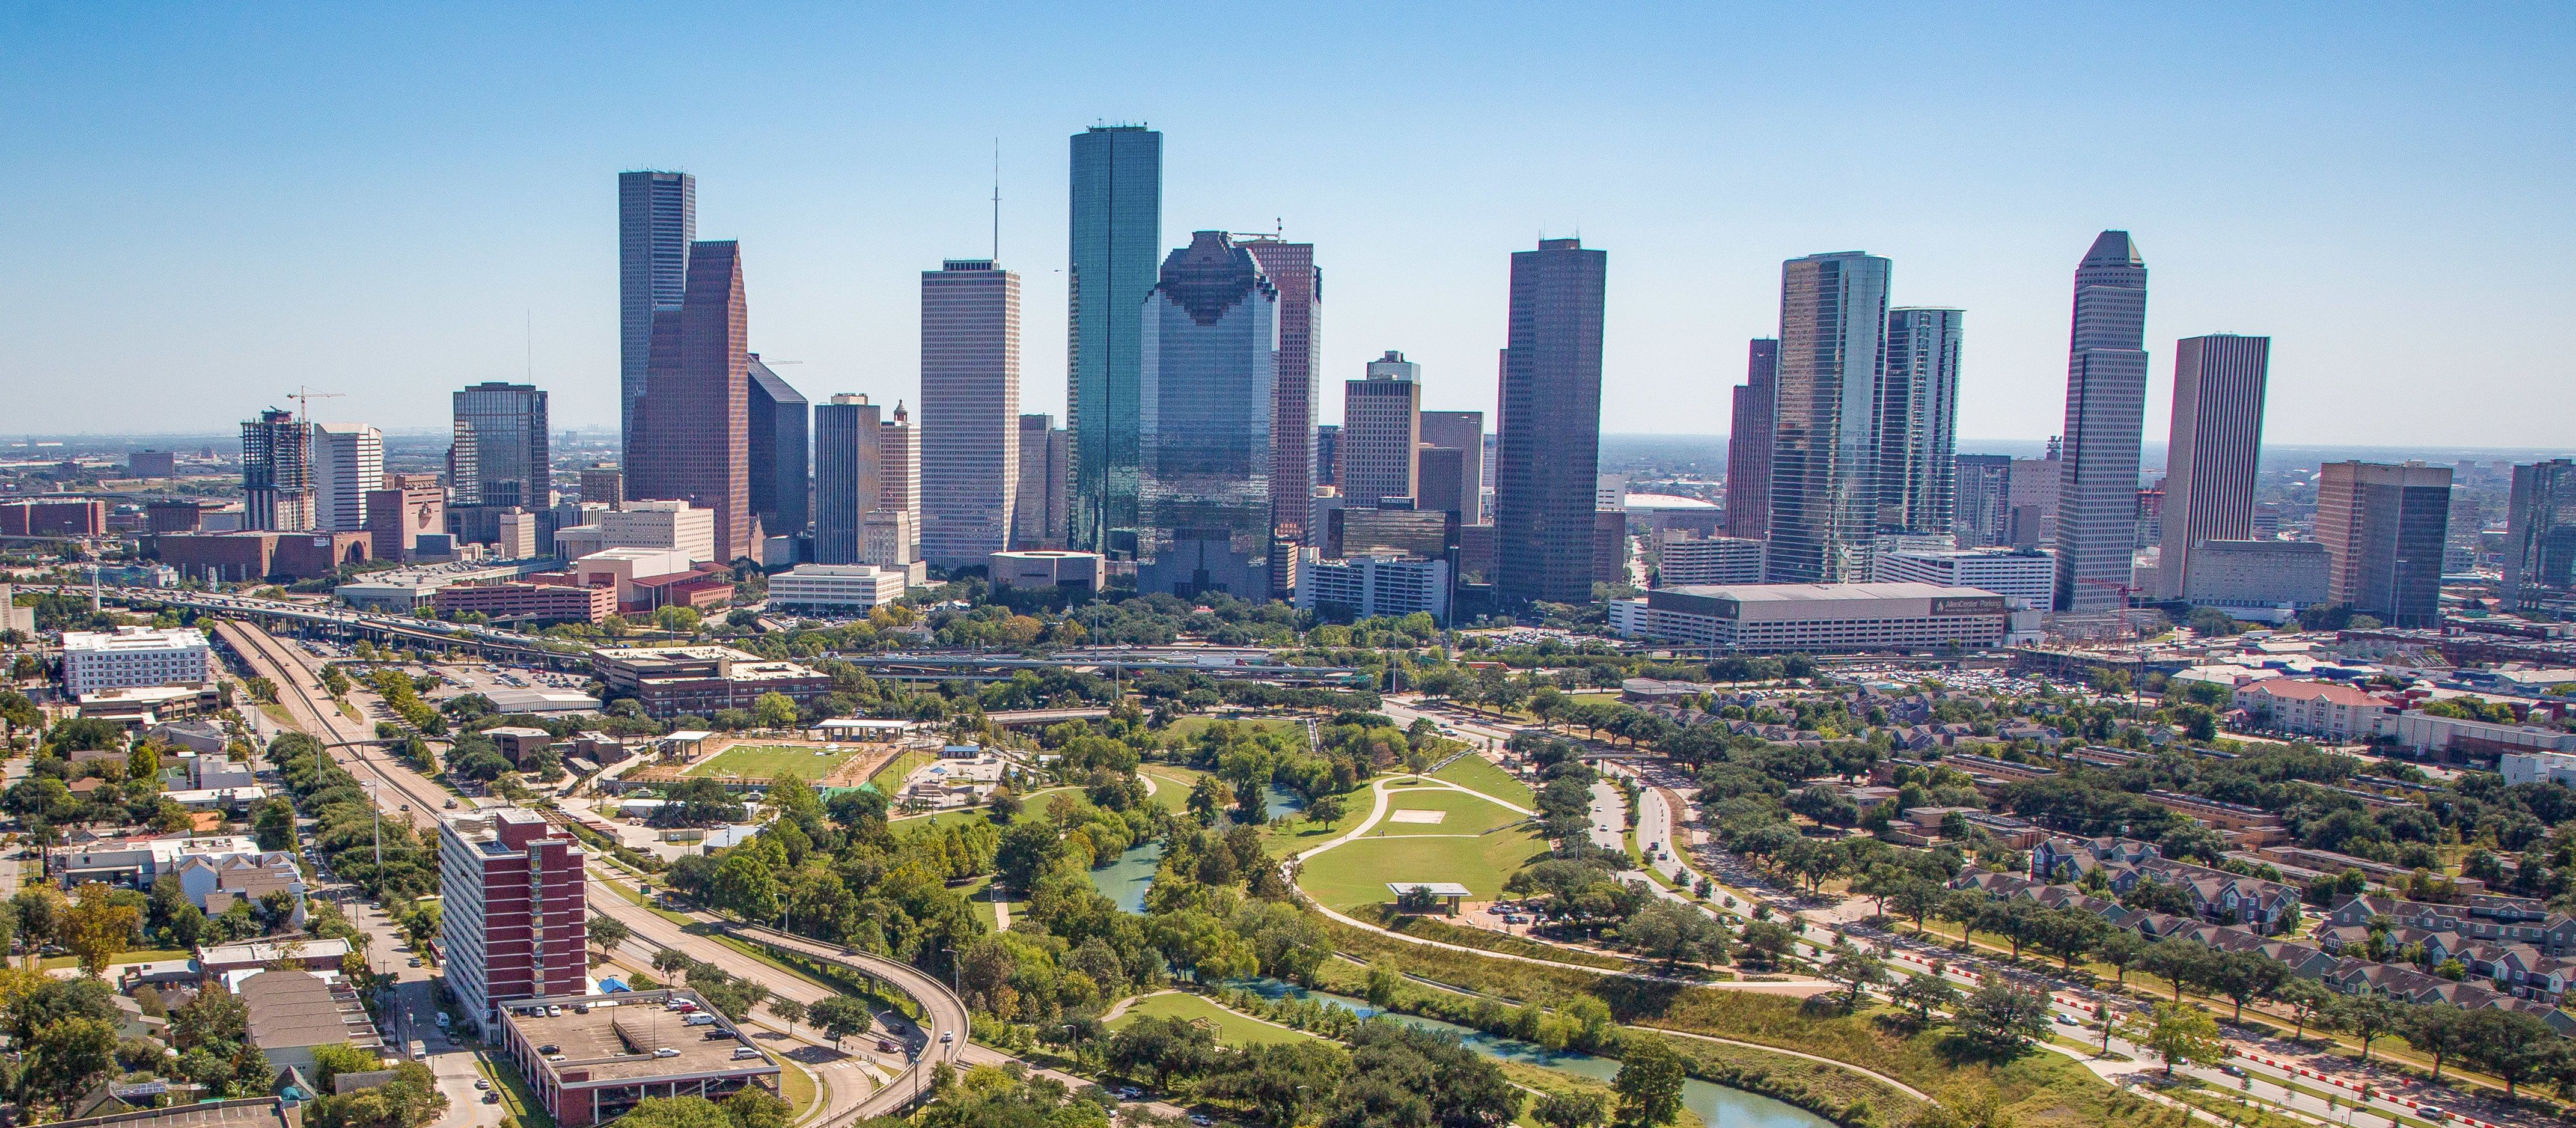 Die Skyline von Houston